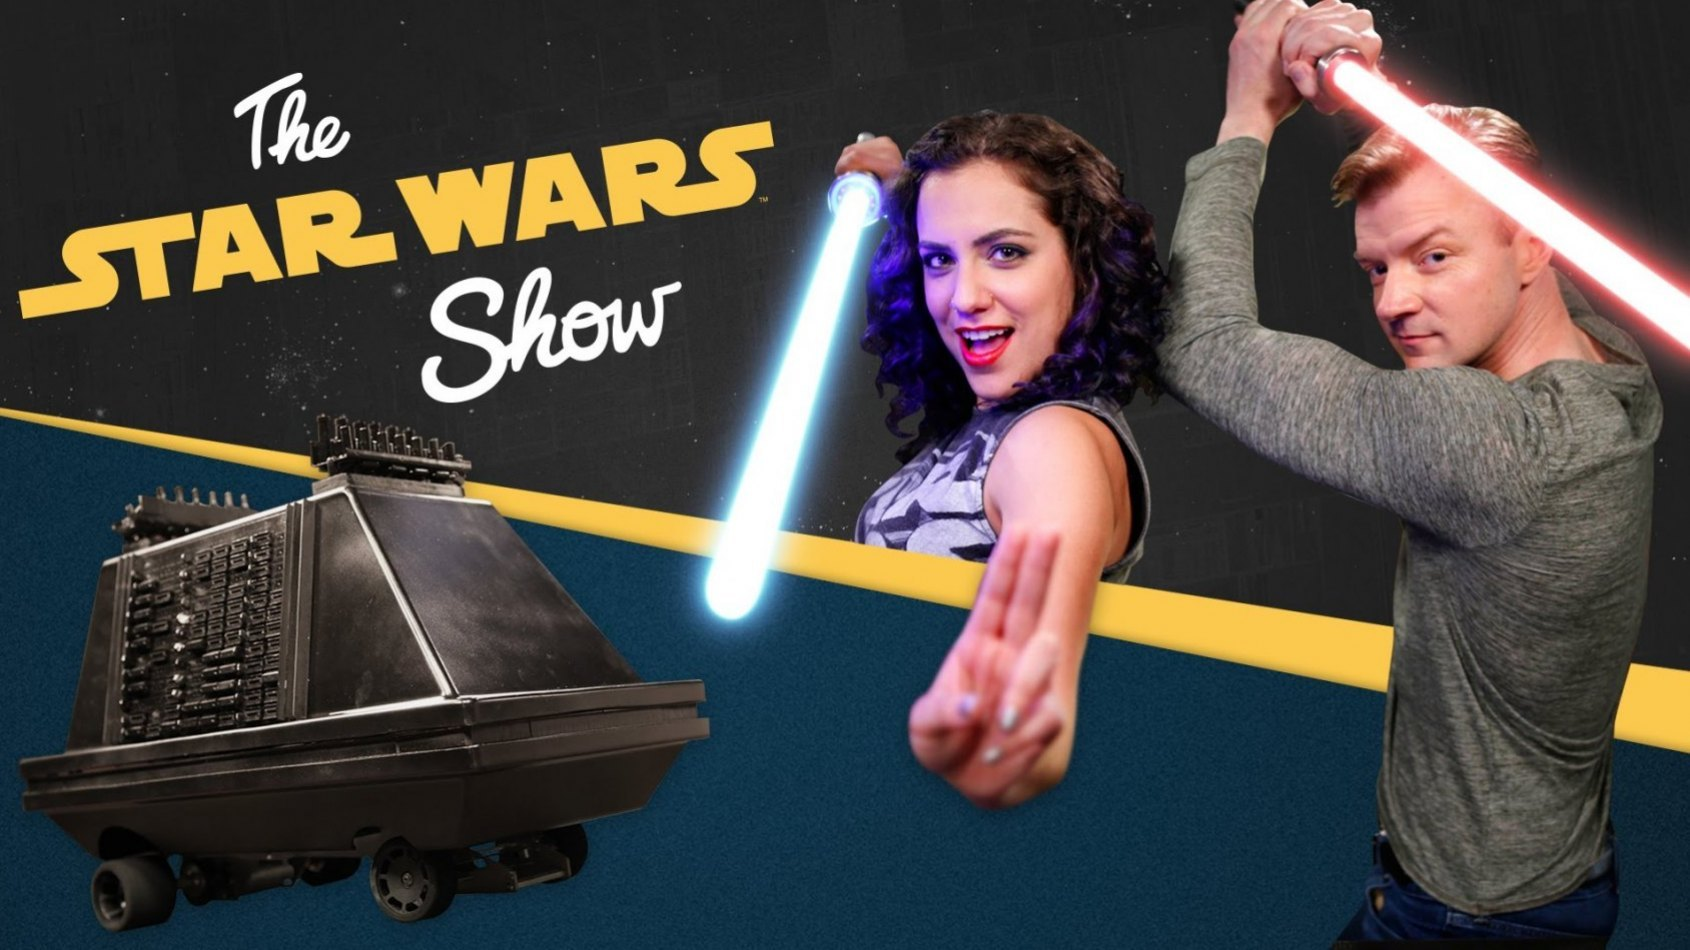 L'épisode 8 du Star Wars show disponible